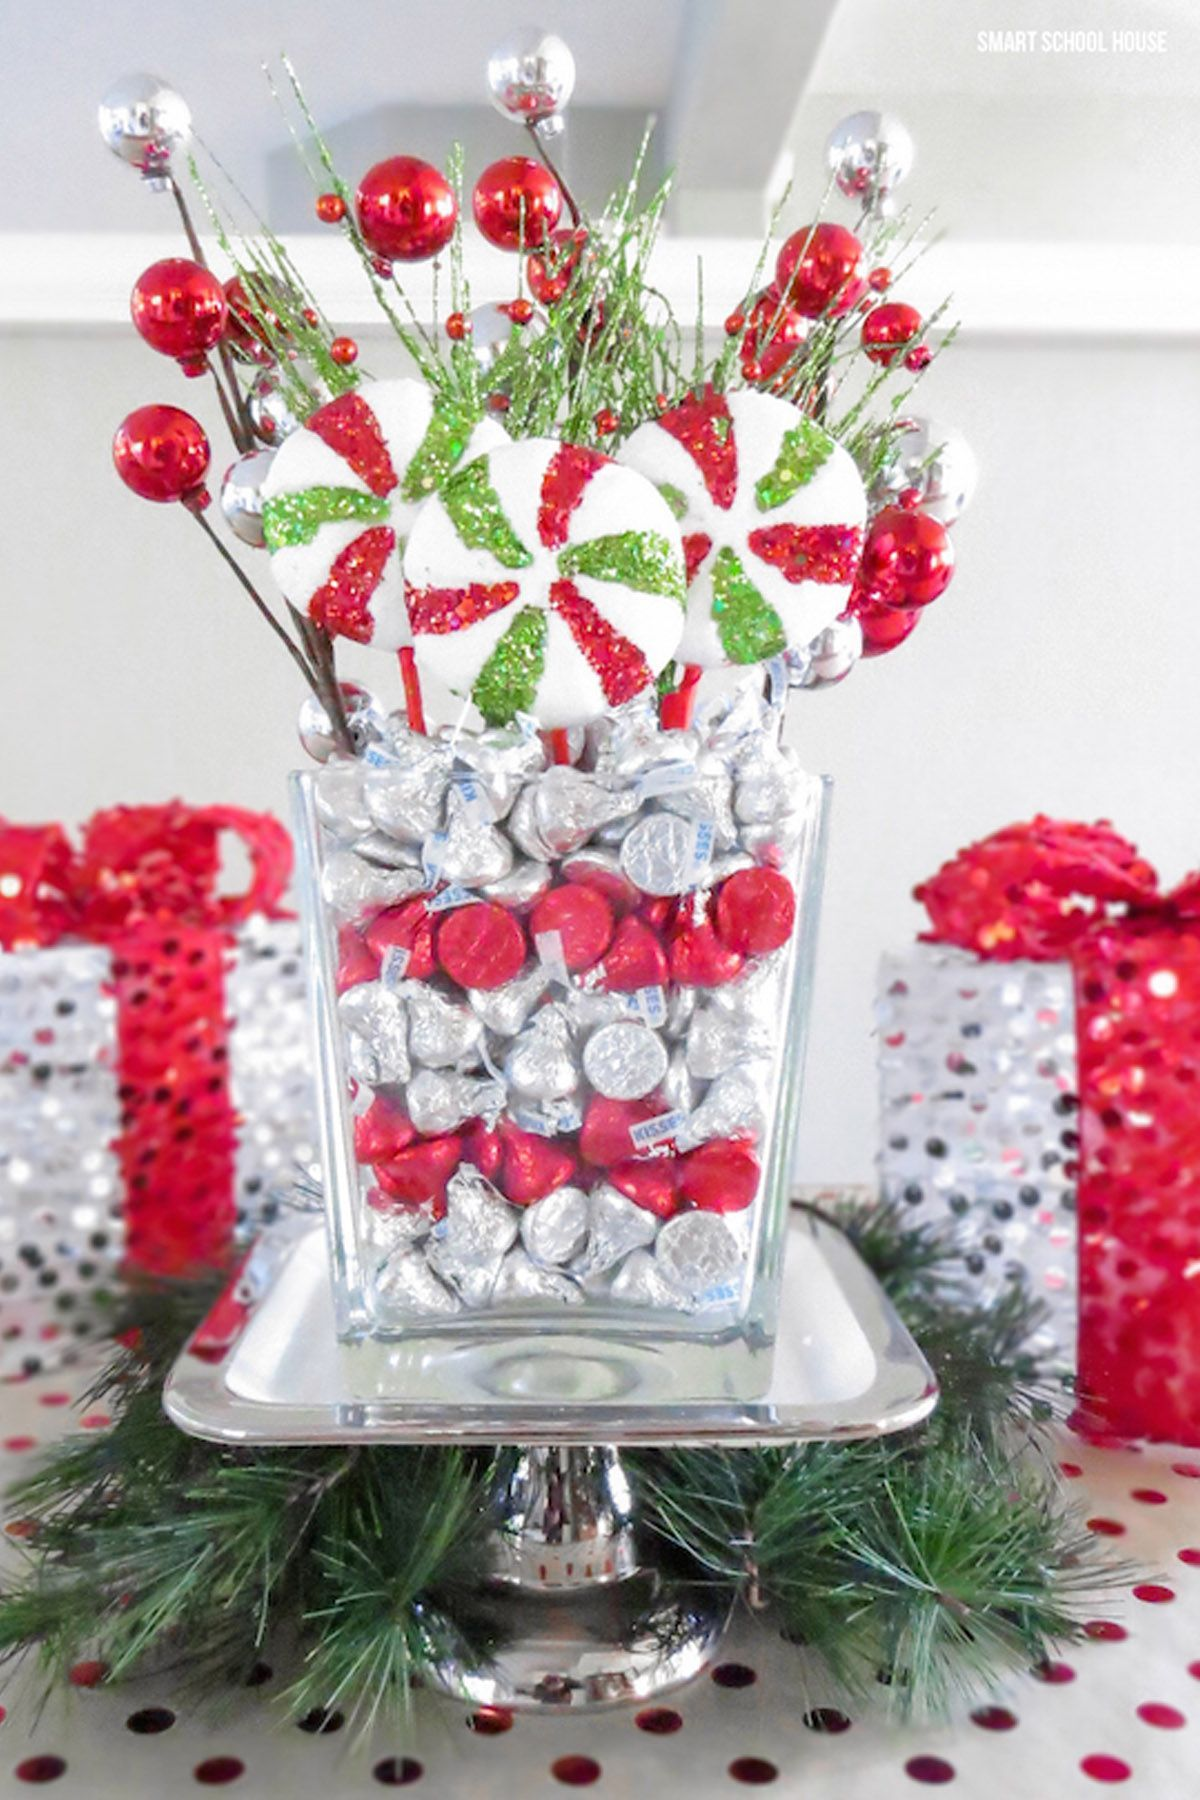 32 Festive Christmas Table Decorations To Brighten Up Your Feast